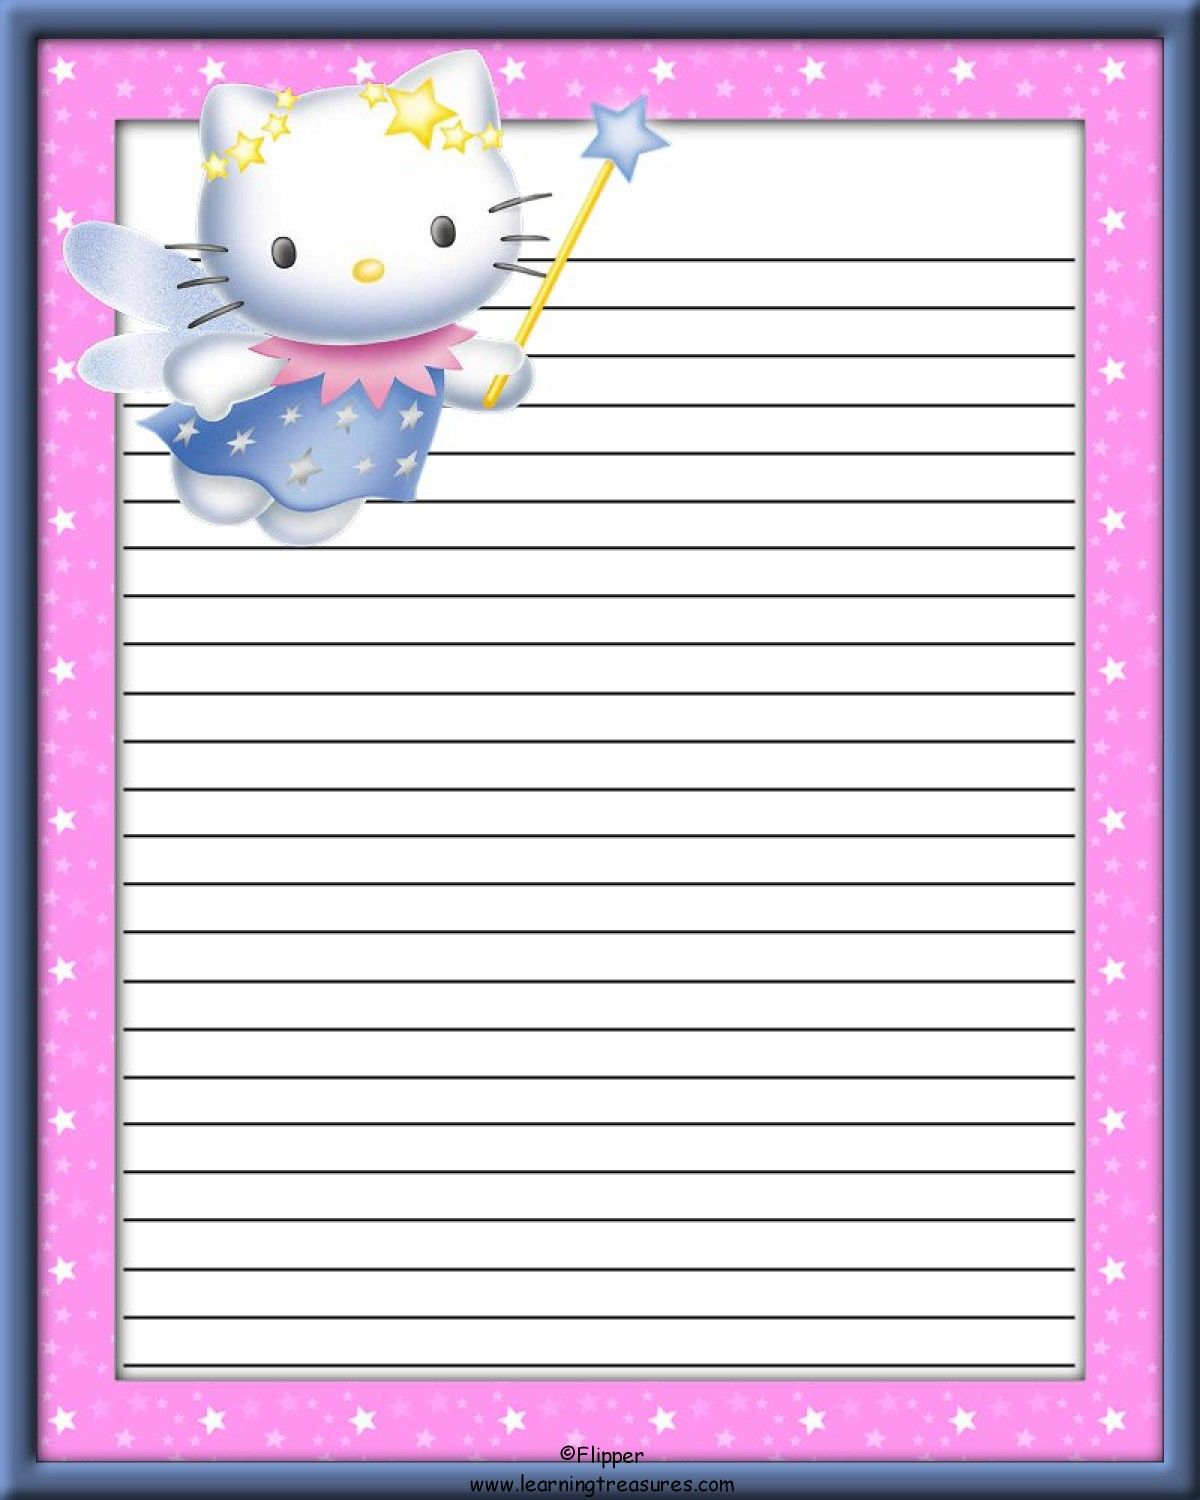 Fairy Kitty Stationery For Kids